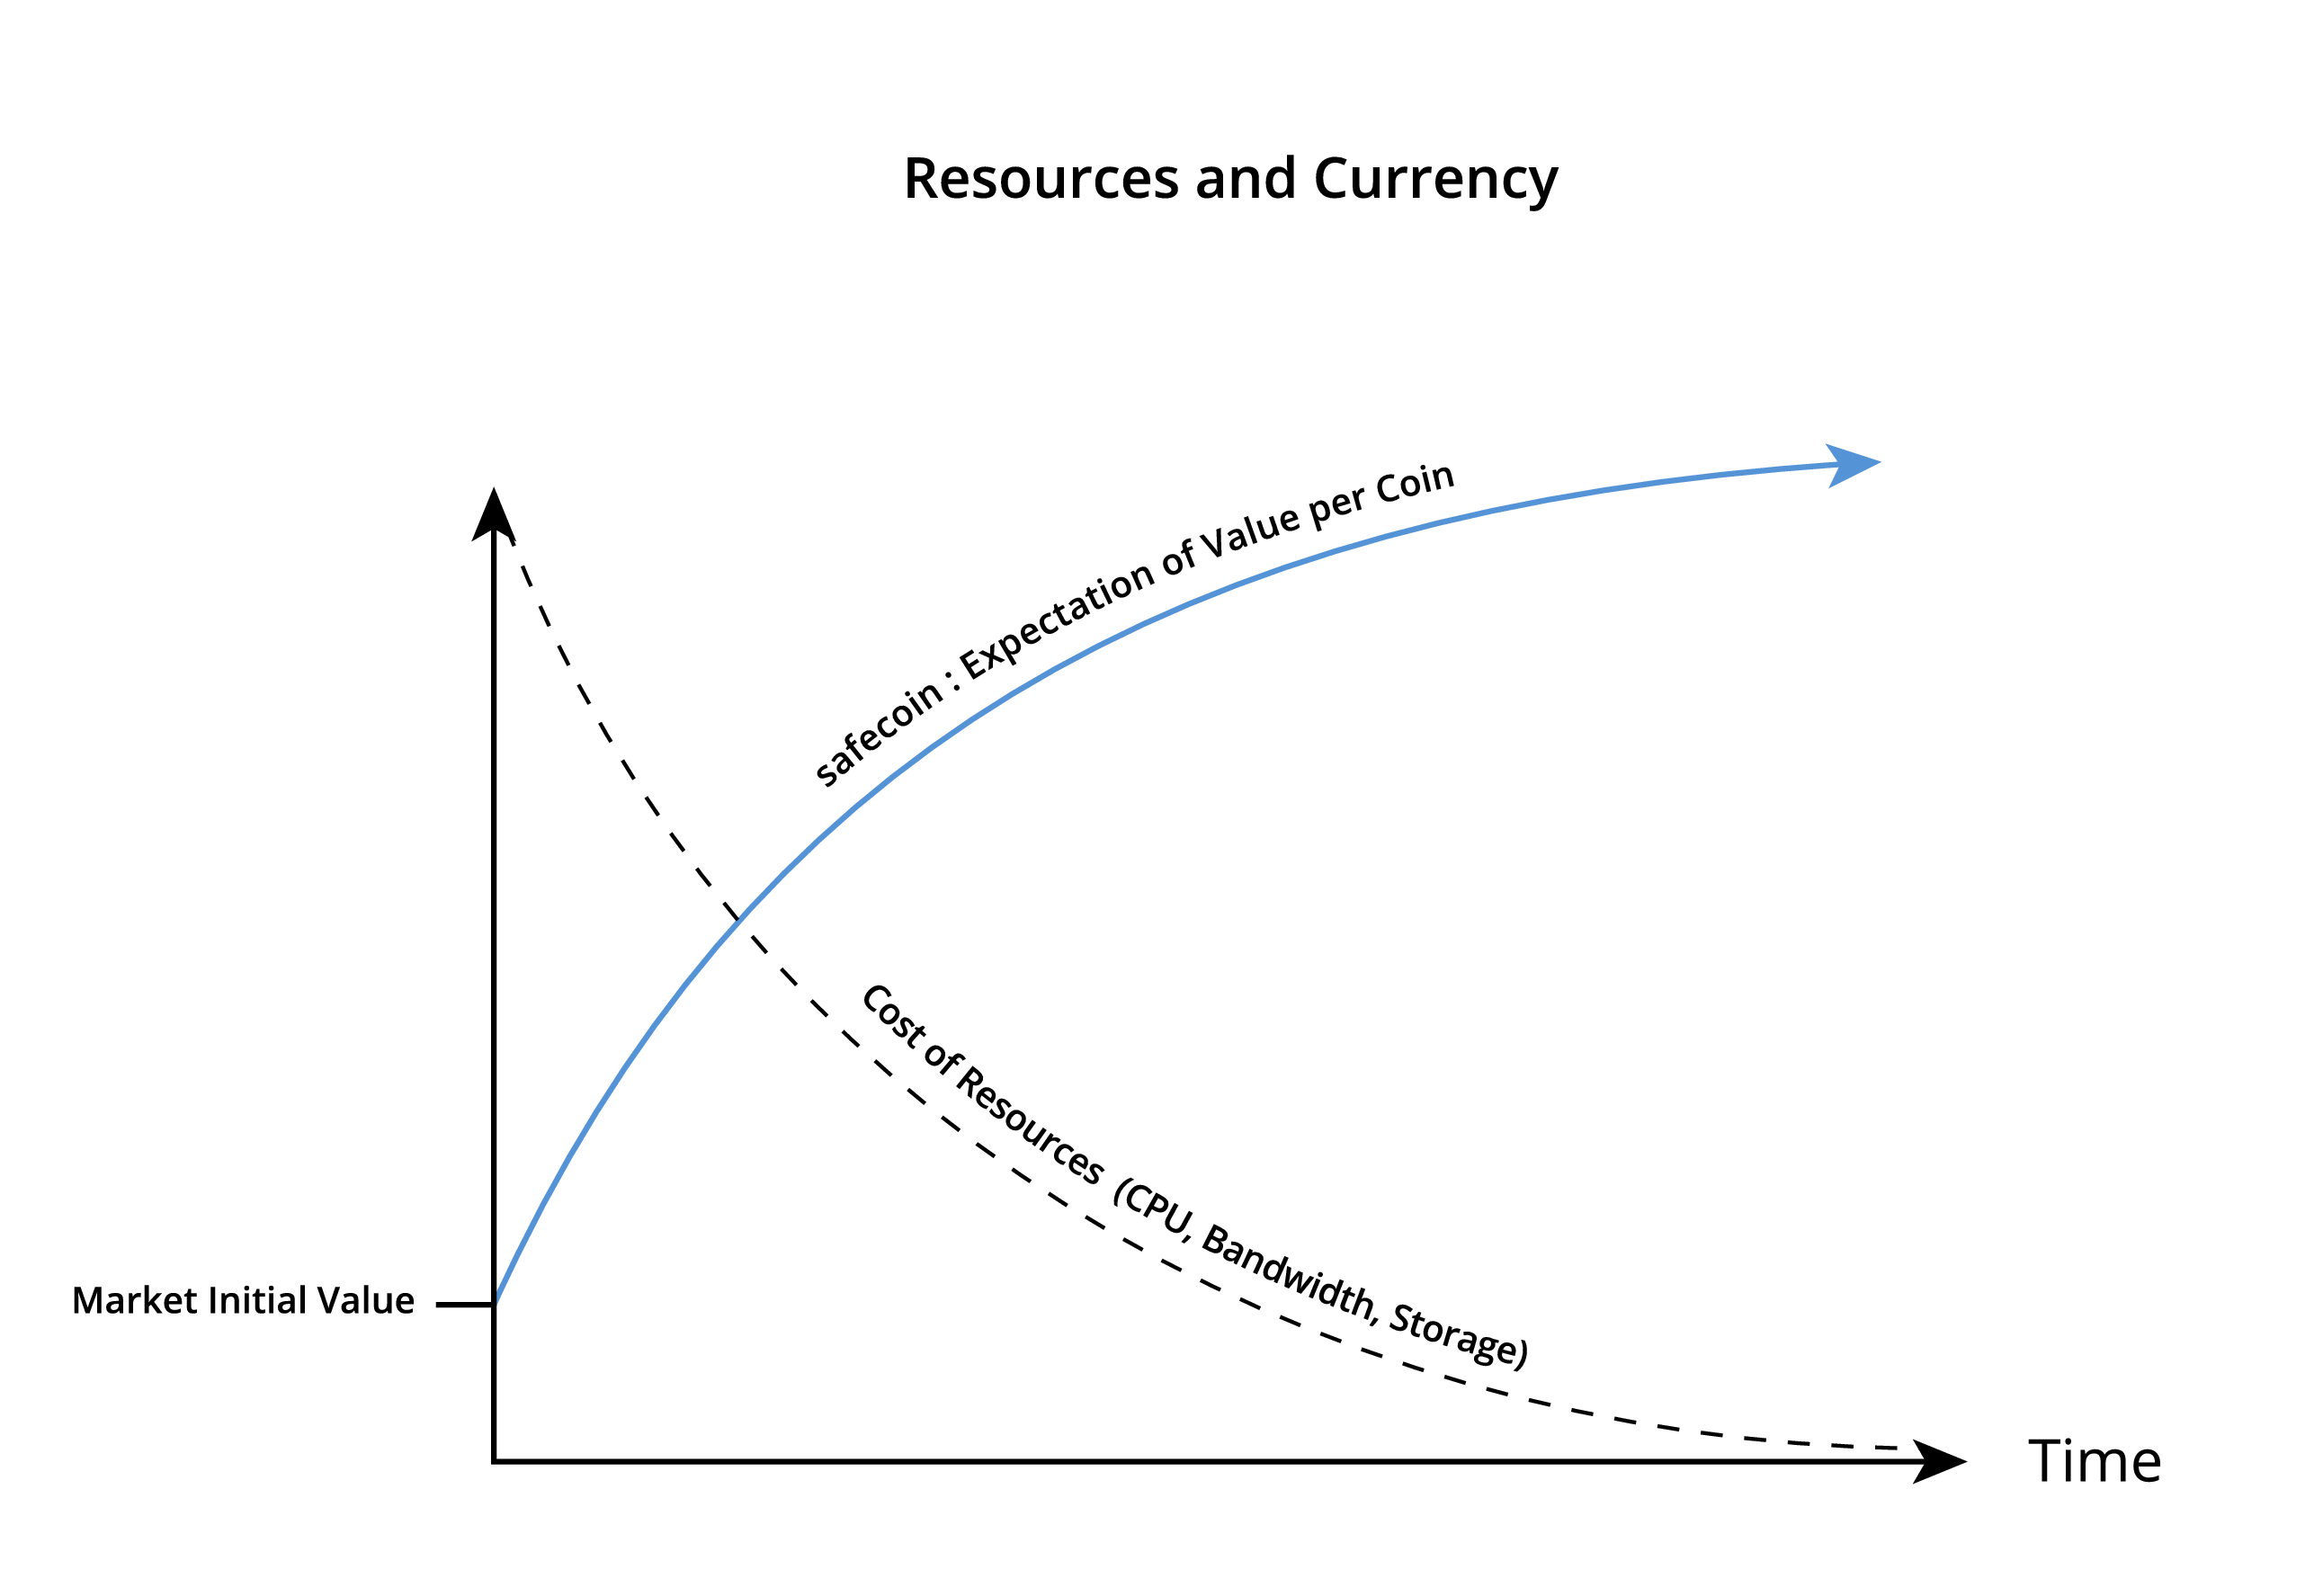 Resources Graph